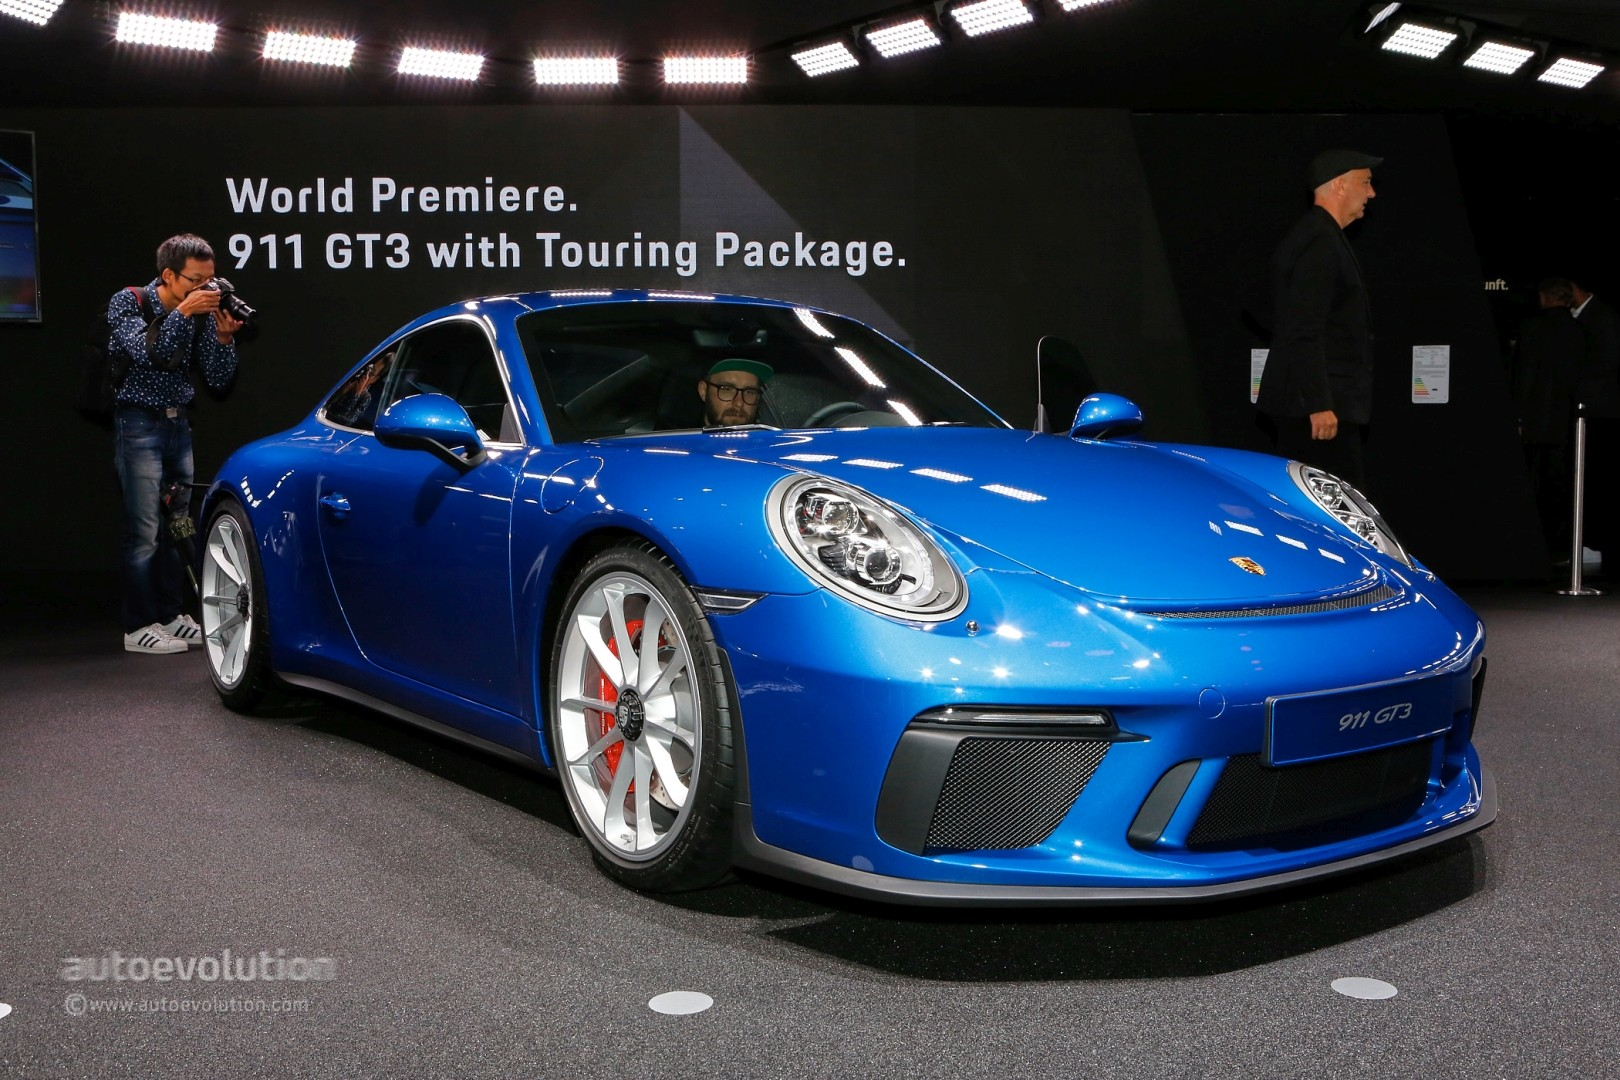 New Porsche 911 Gt3 Touring Package Is A No Cost Option 911 R Clone